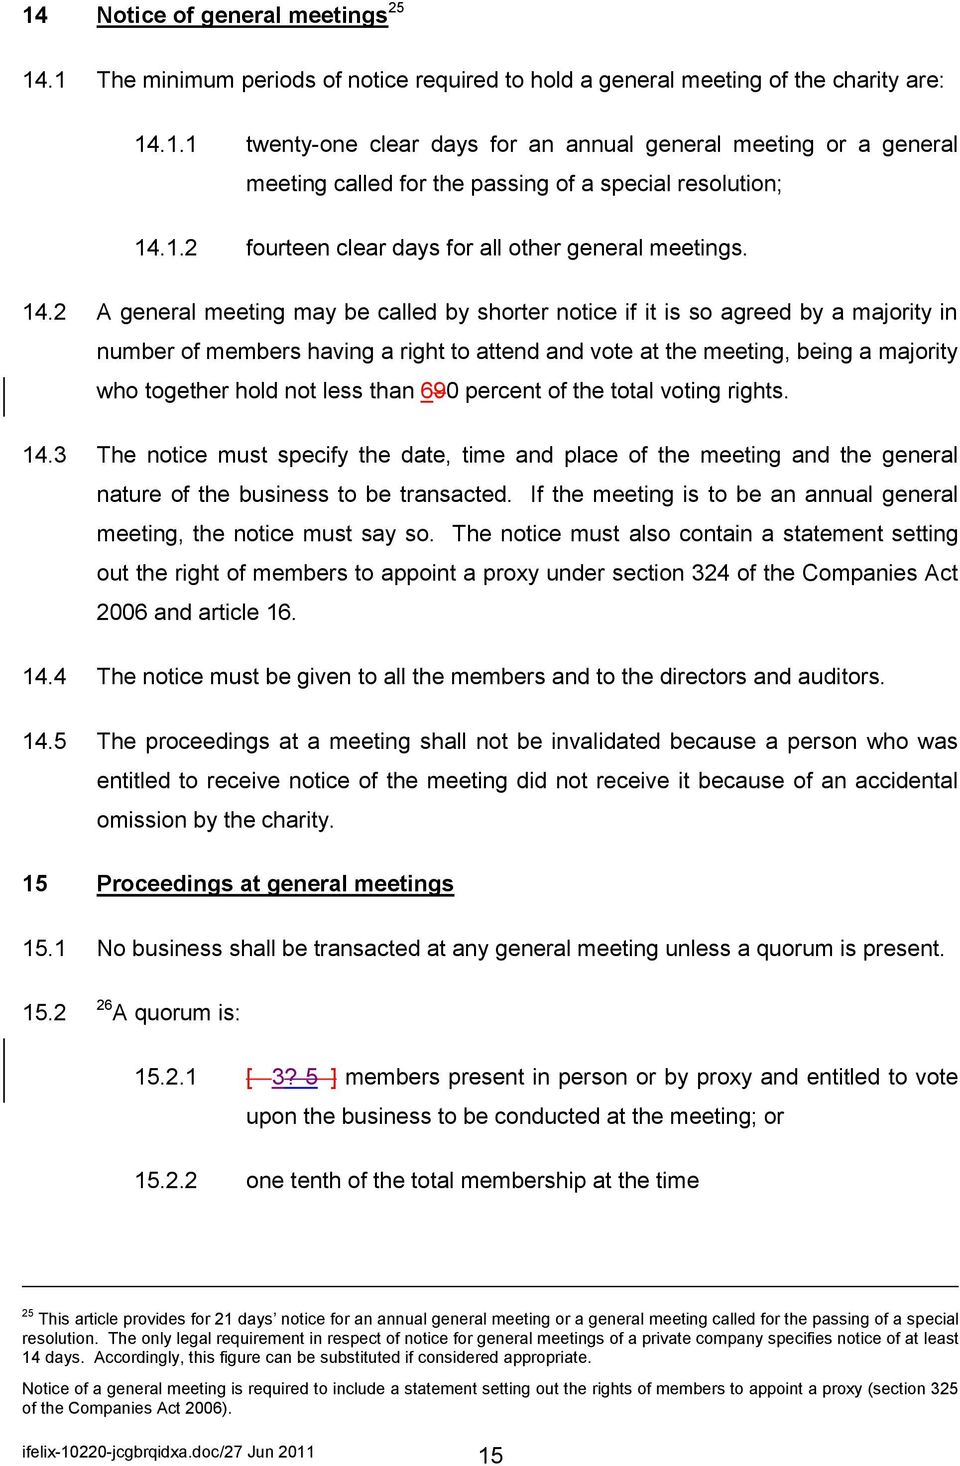 2 A general meeting may be called by shorter notice if it is so agreed by a majority in number of members having a right to attend and vote at the meeting, being a majority who together hold not less